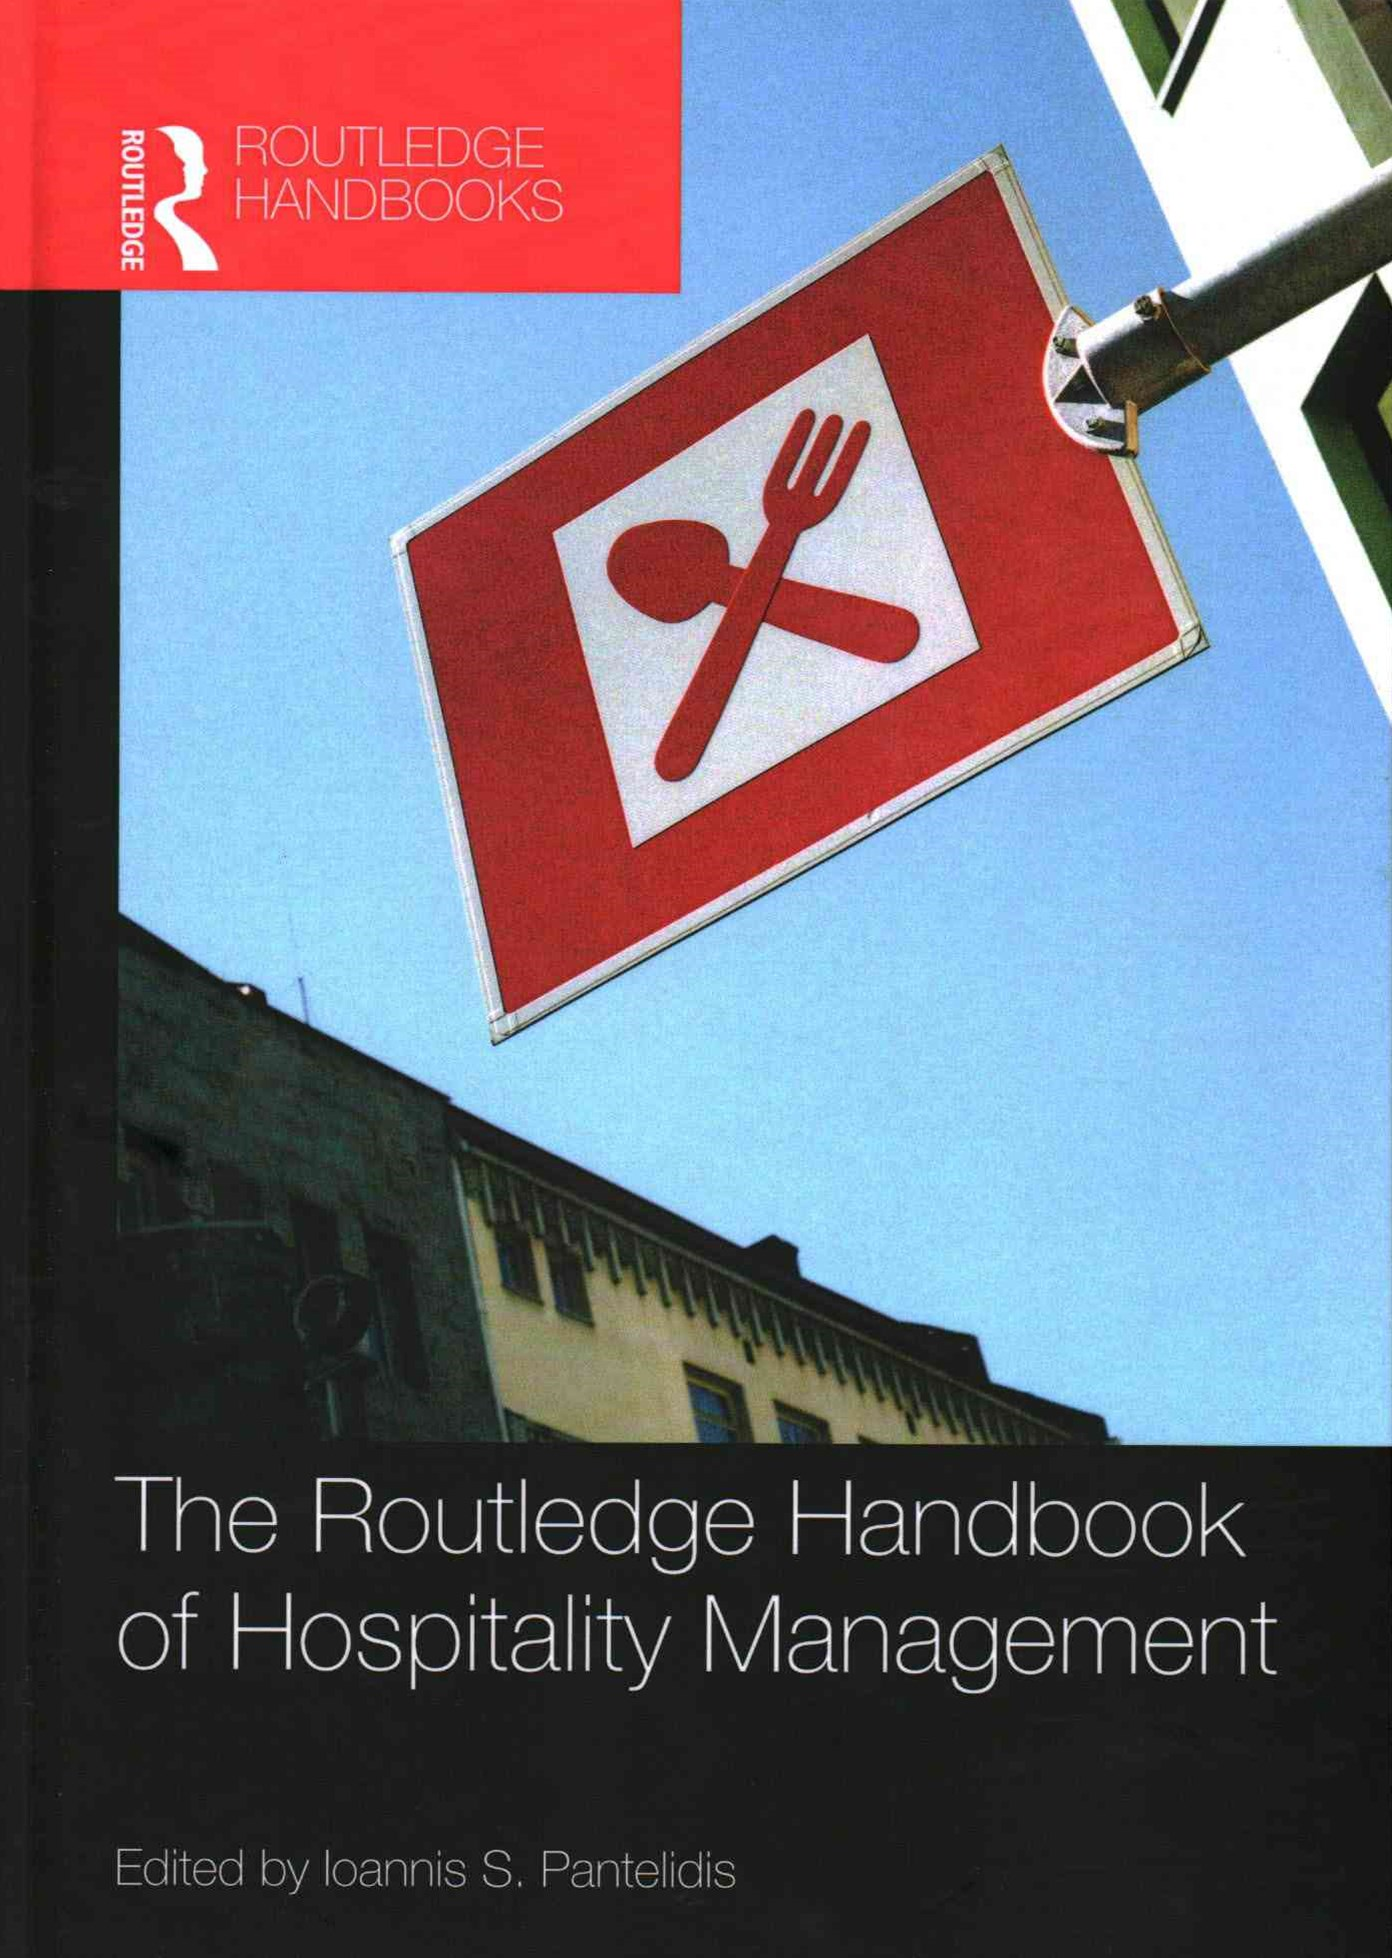 Routledge Handbook of Hospitality Management